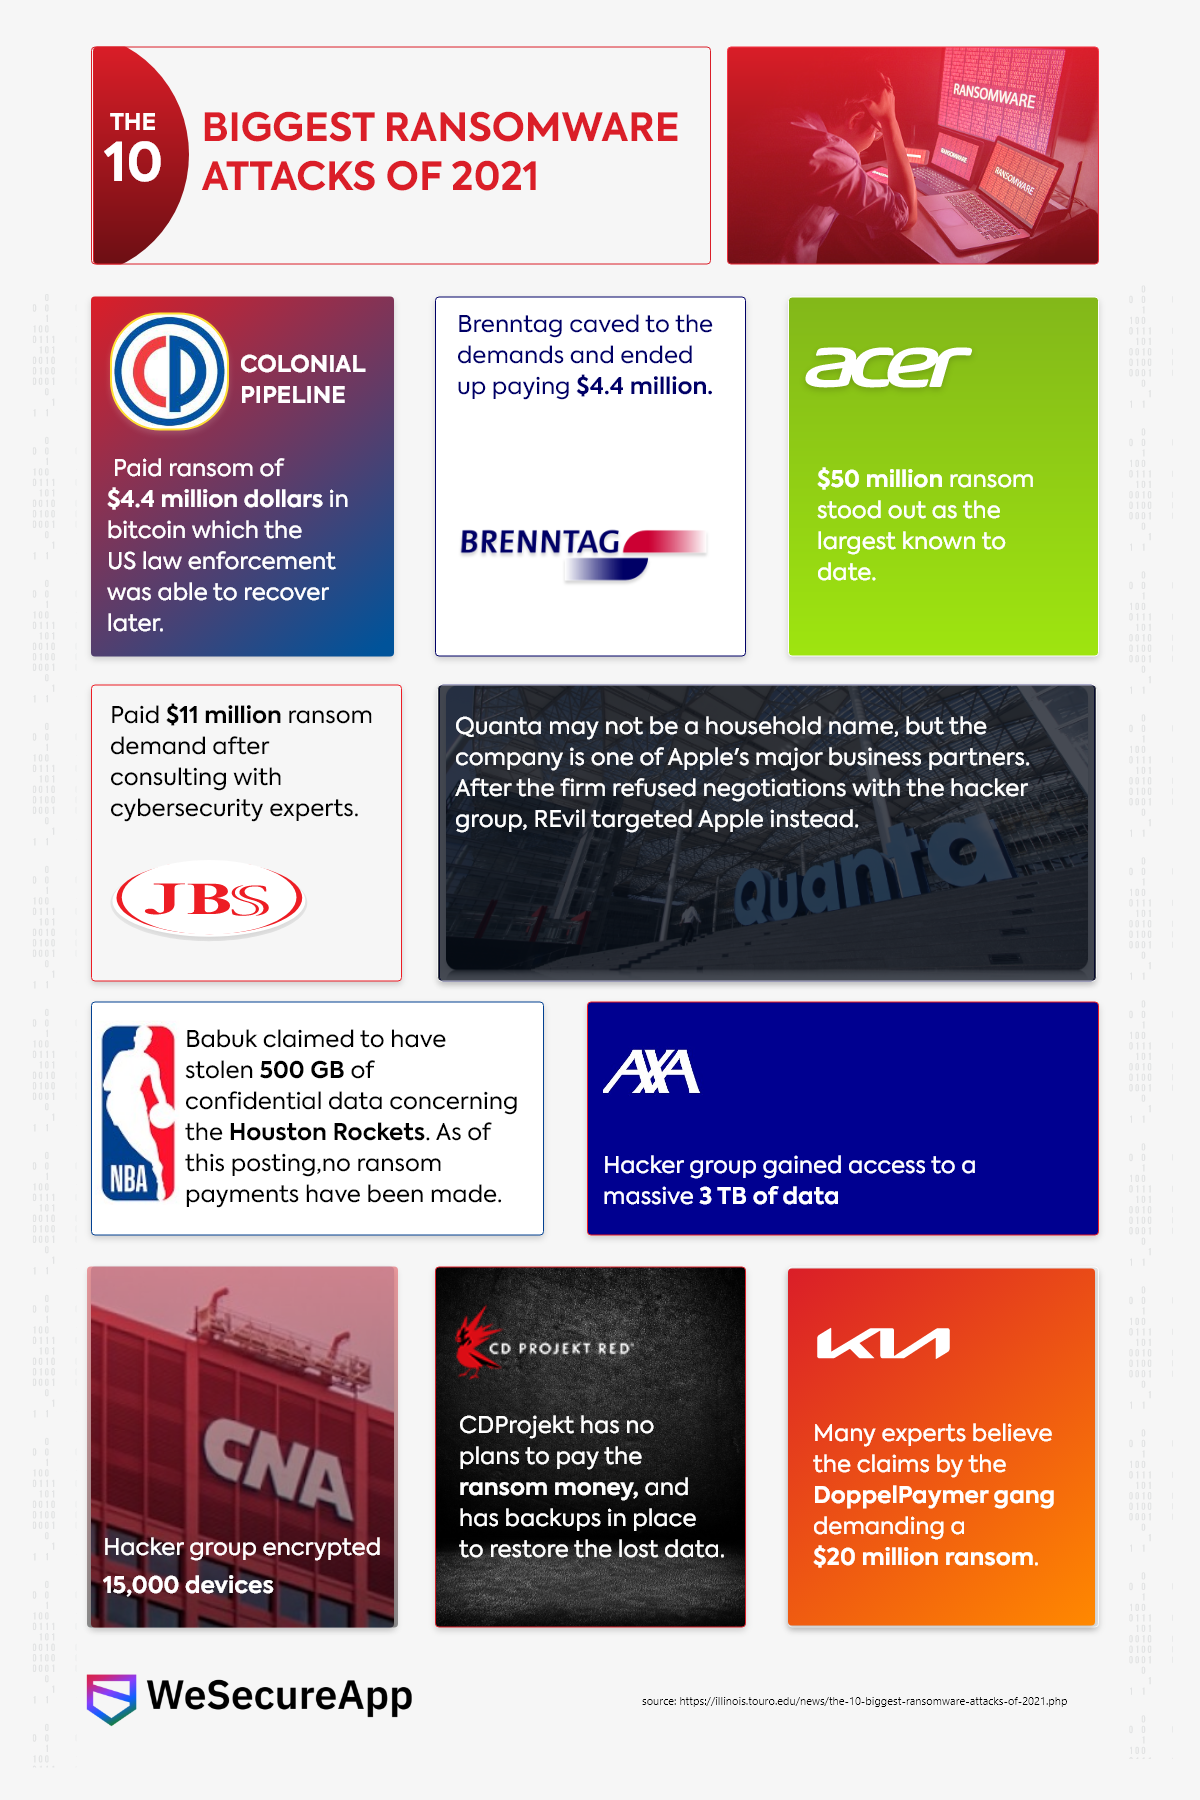 The 10 Biggest Ransomware Attacks of 2021- Infographic